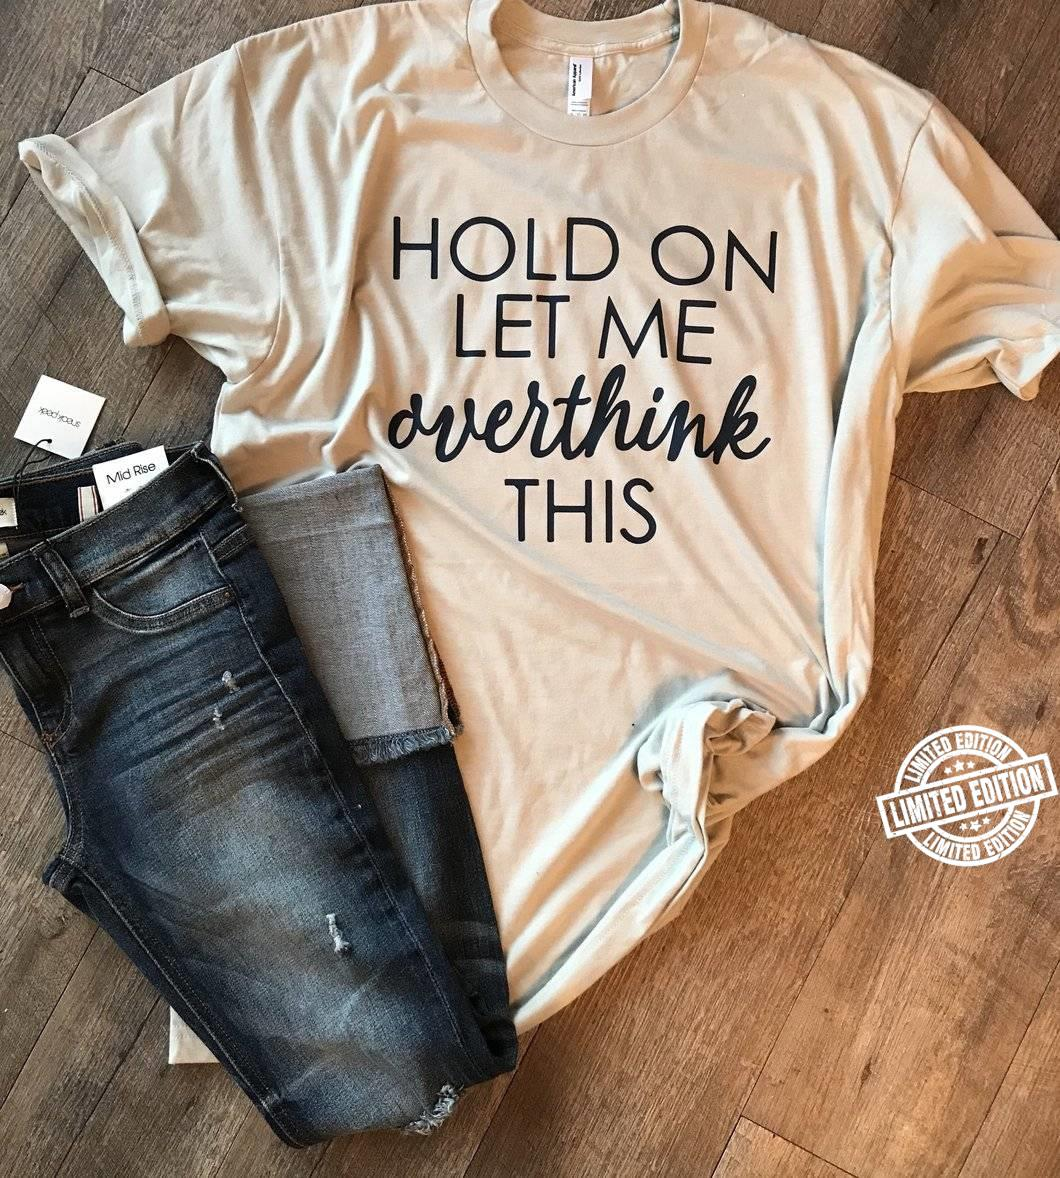 Hold on let me overthink this shirt